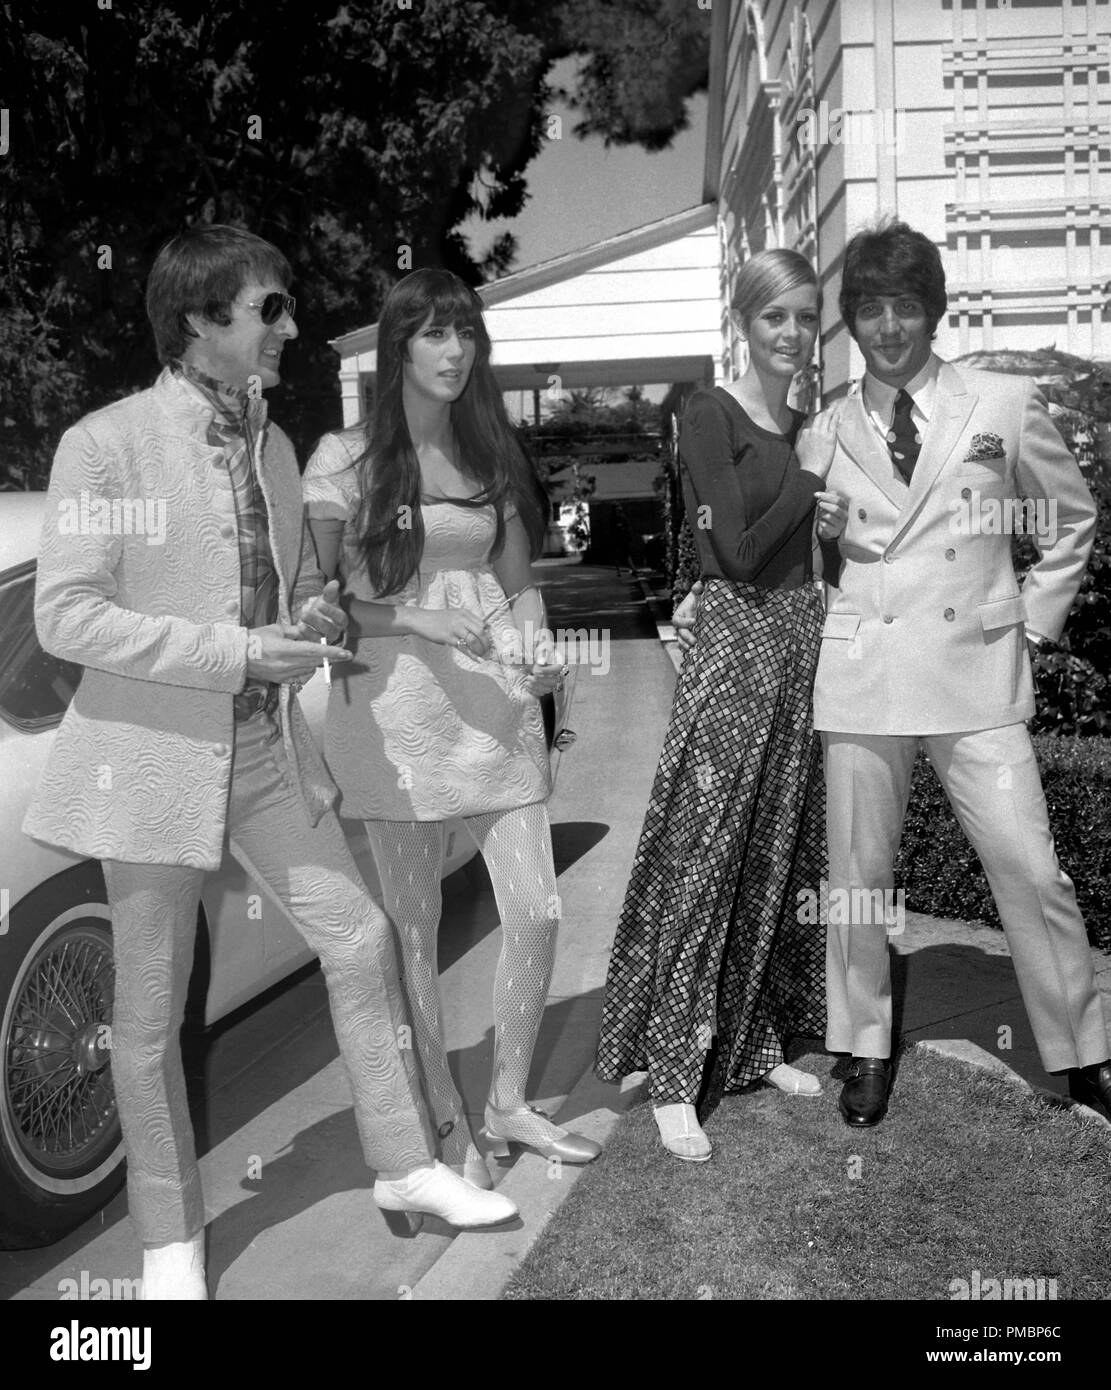 545db3b8ec3 Sonny Bono, Cher, Twiggy and Justin de Villeneuve (Twiggy's boyfriend and  manager), at a party held at the house of Sonny and Cher on May 15, ...